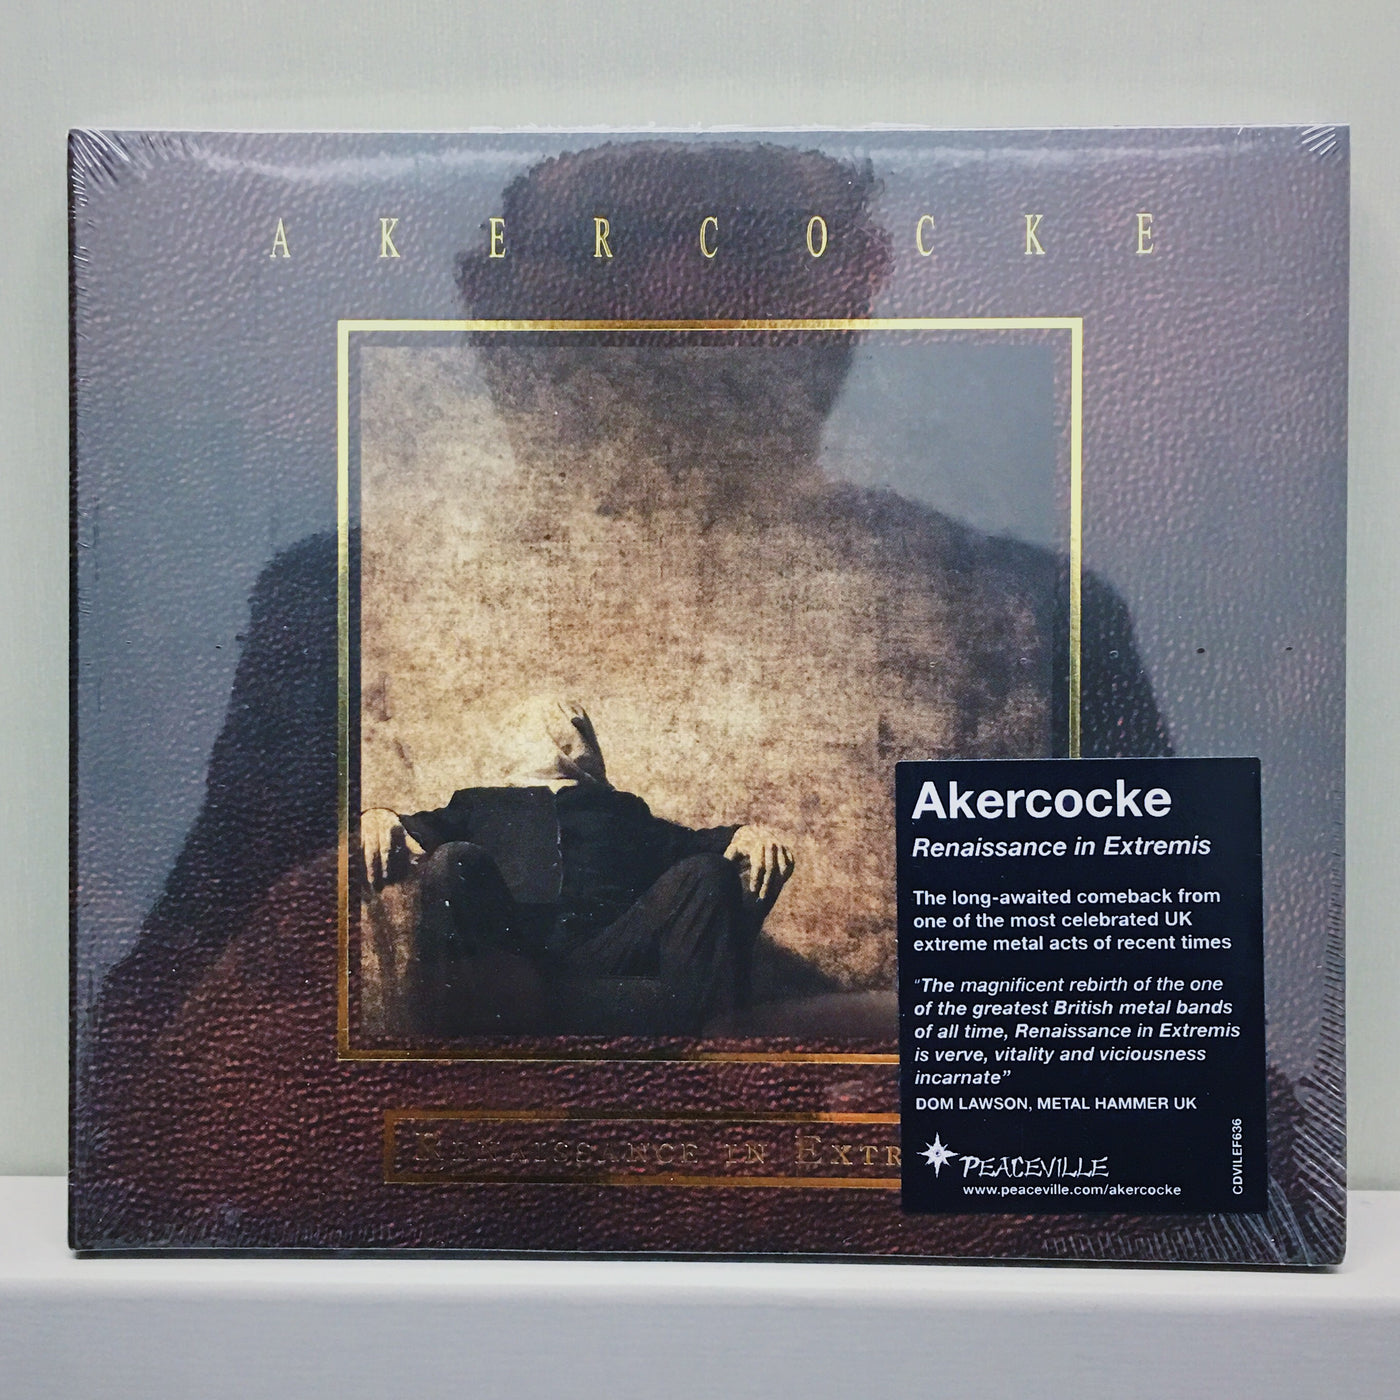 Architects All Our Gods Have Abandoned Us Cd Album